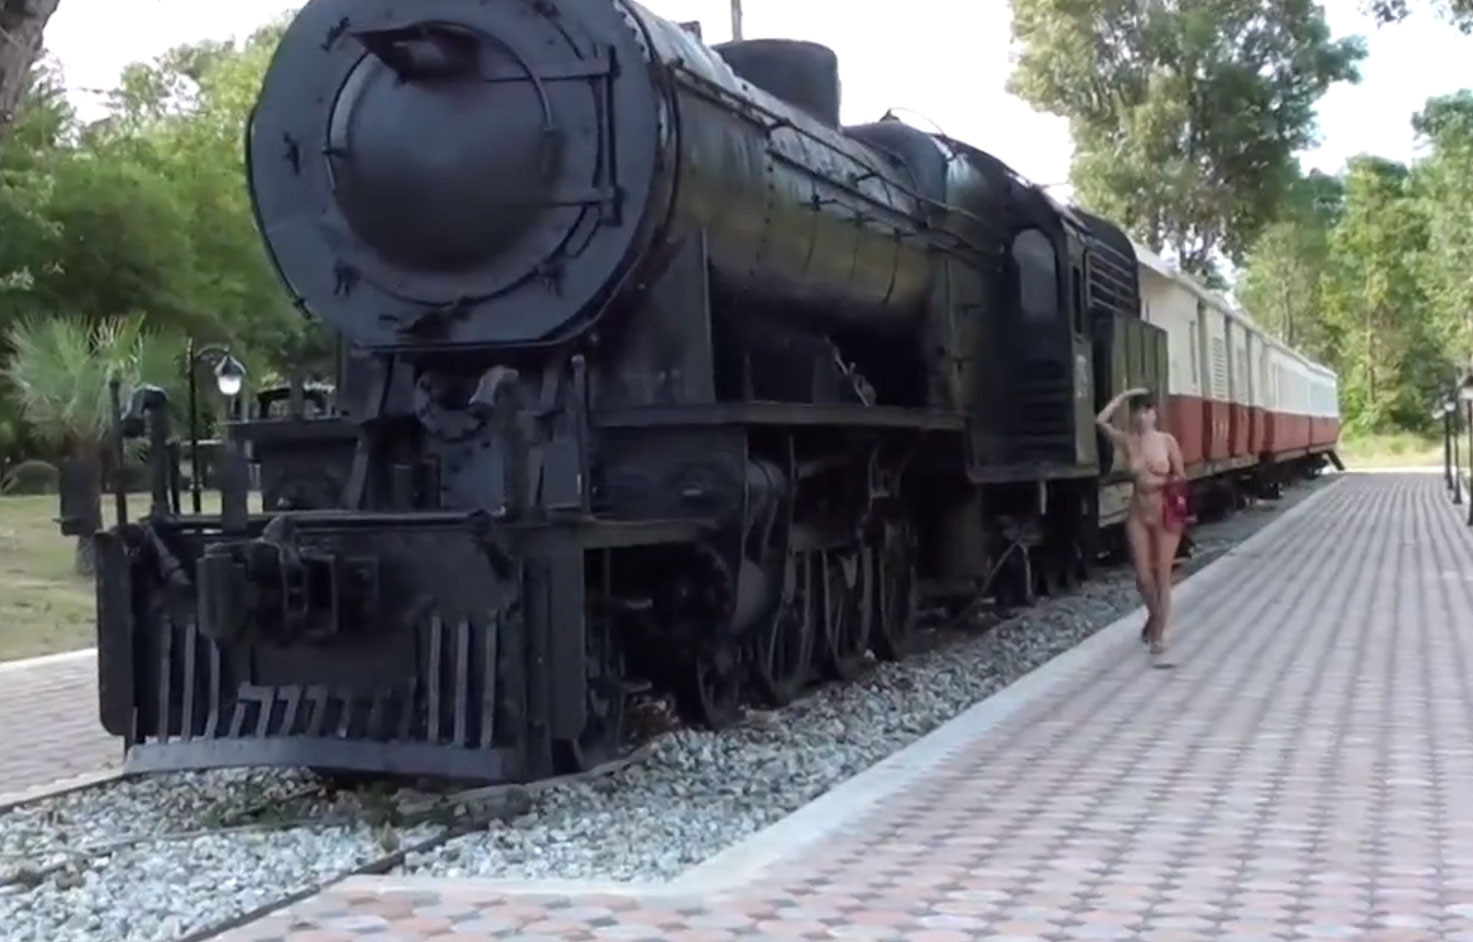 Walking naked in the train station